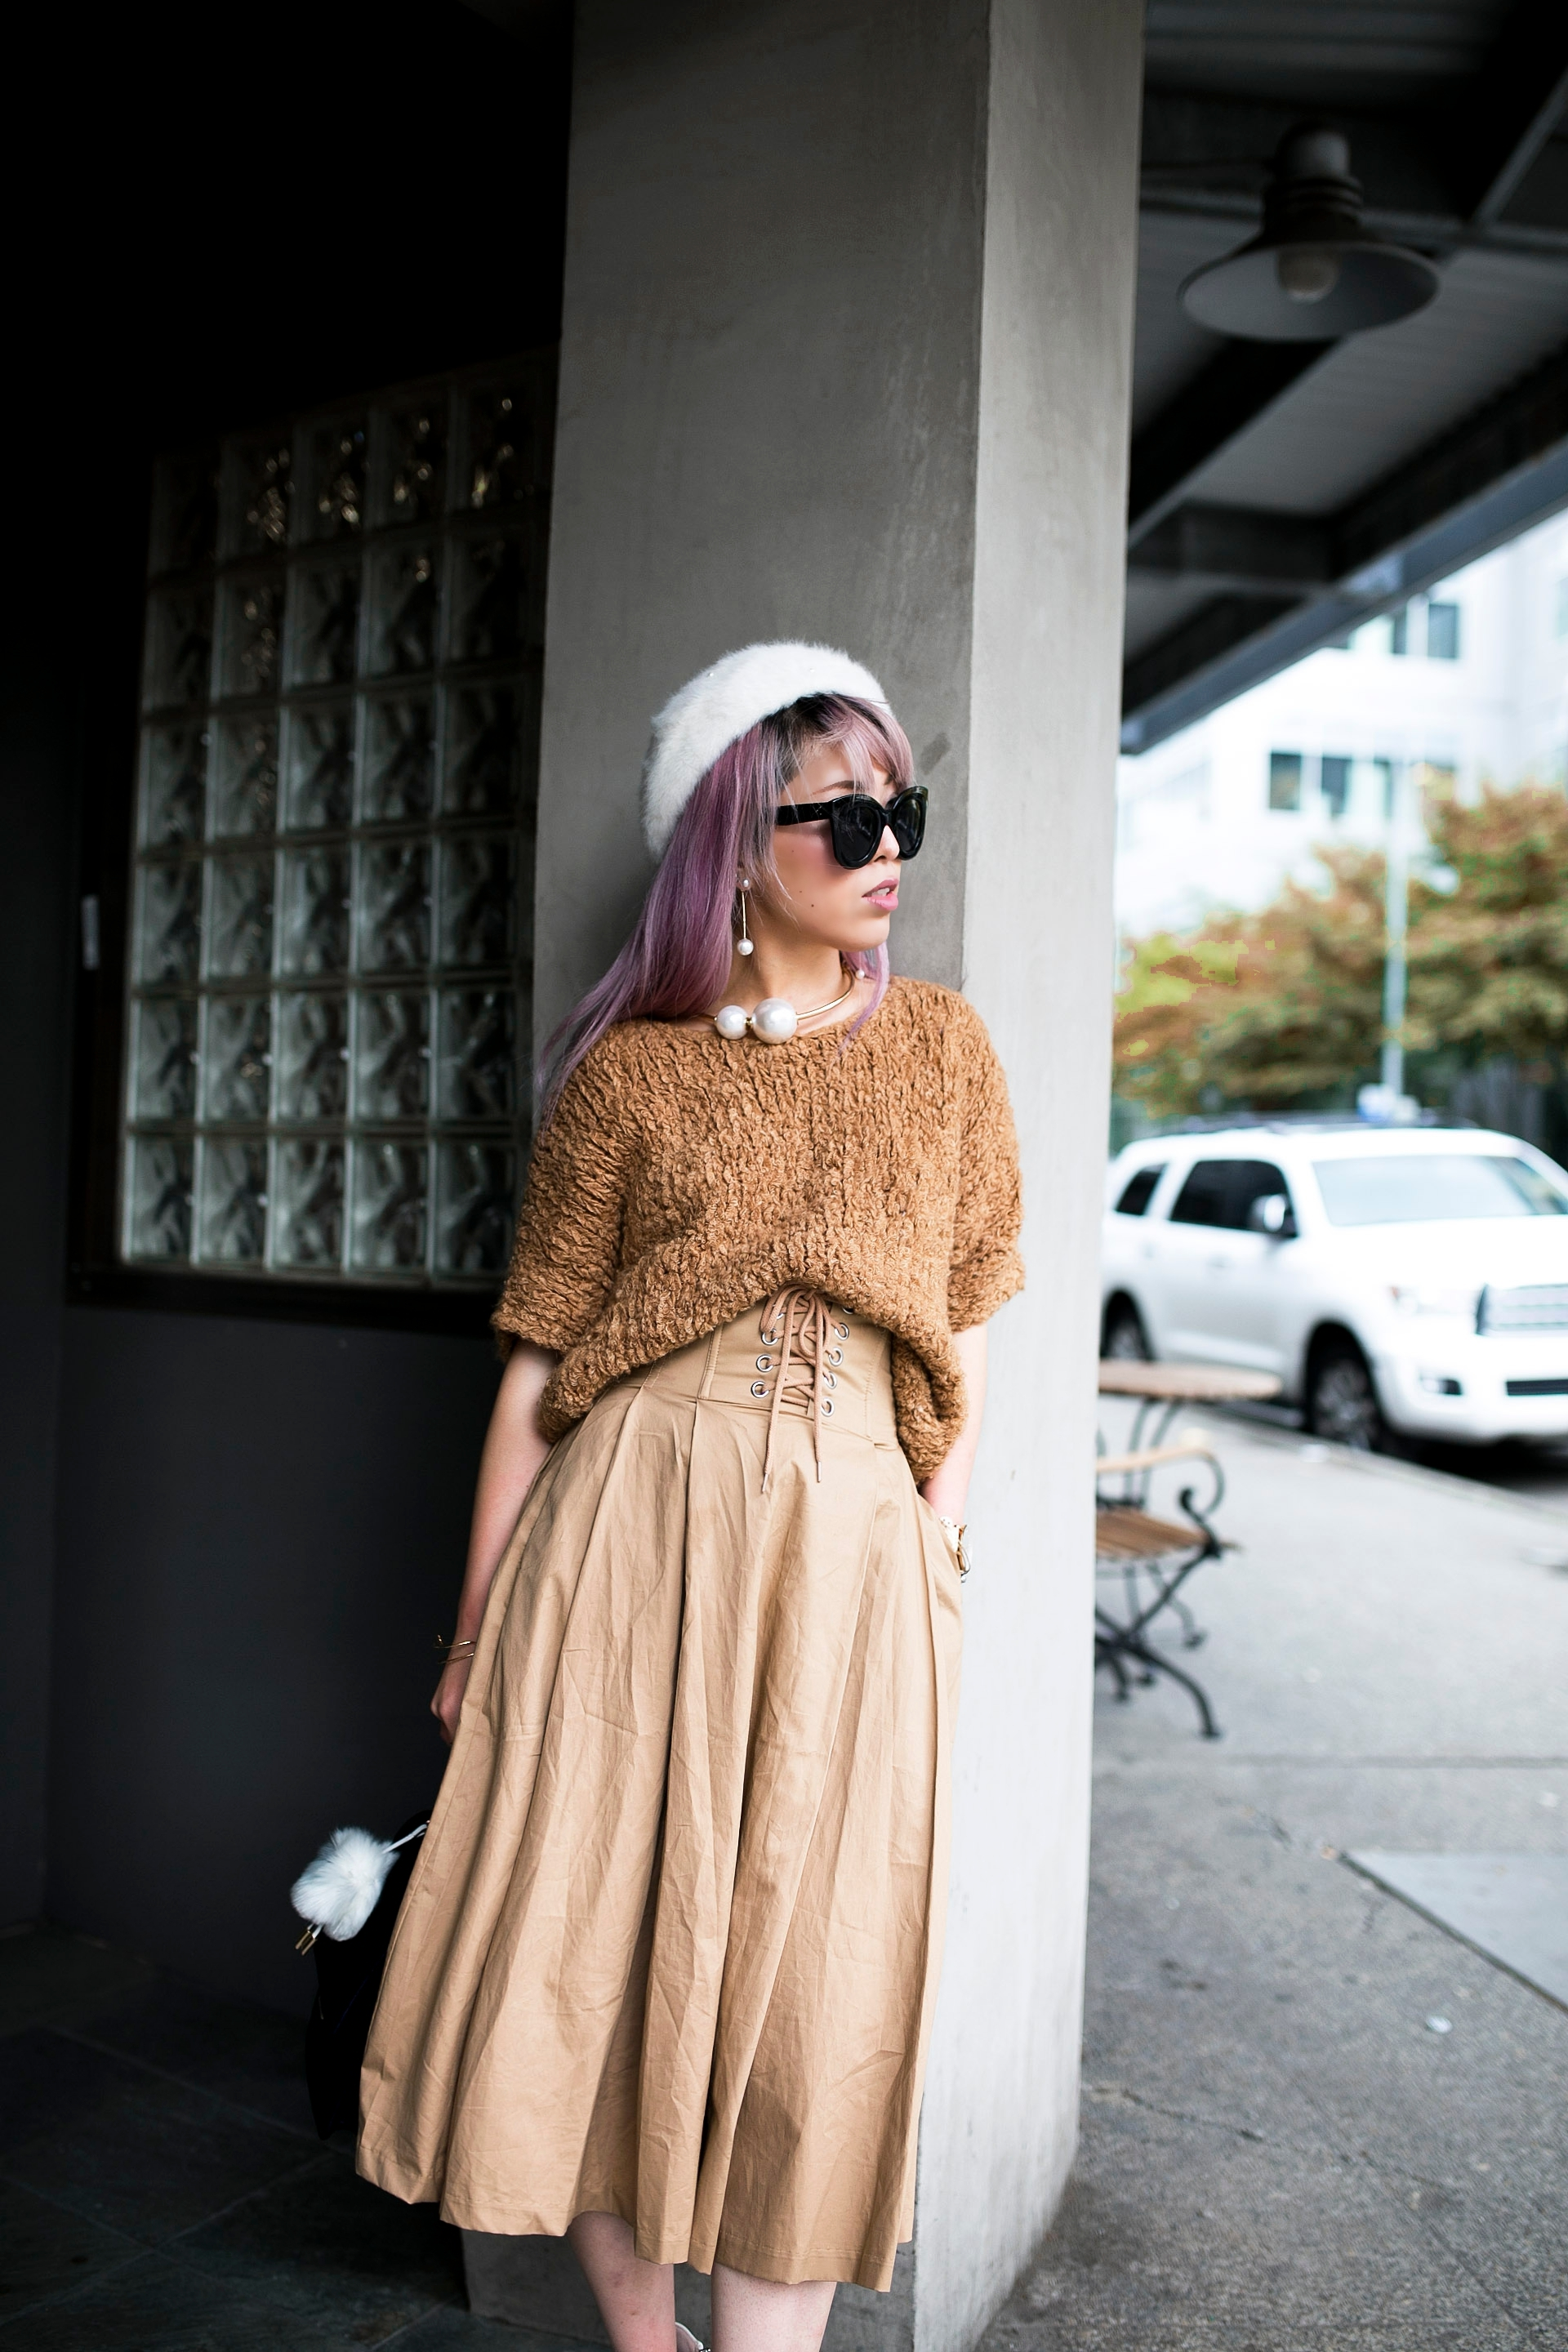 Forever 21 Fluffy White Beret, Express Pearl Collar Necklace, Thrifted Teddy Camel Top, H&M High-waisted camel midi skirt, zara velvet bag, Forever 21 White Ankle Boots, Aika's Love Closet, Seattle Fashion Style Blogger, Japanese, pink hair, street style, petite fashion  13